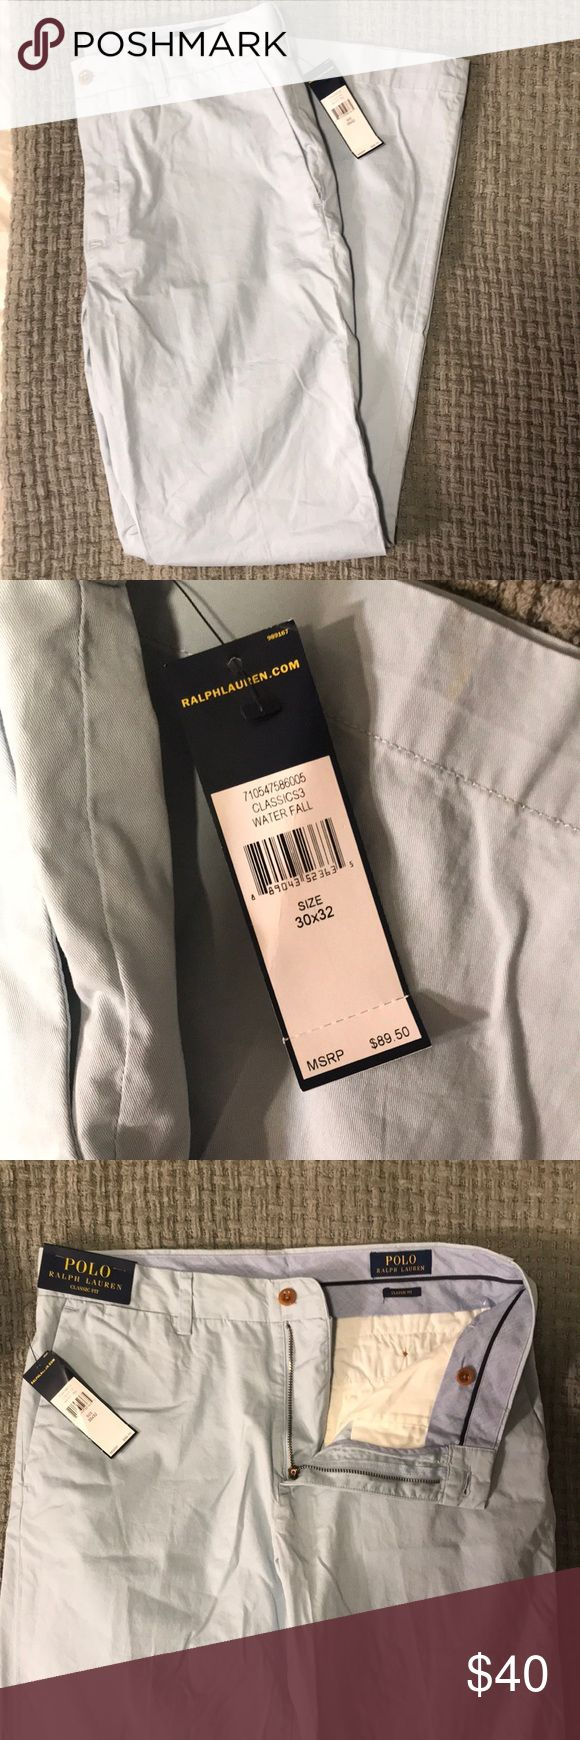 """NEW Polo Light Blue Chino Pants BRAND NEW Polo Ralph Lauren Classic Fit """"water fall"""" light blue chinos/khakis 30x32 Polo by Ralph Lauren Pants Chinos & Khakis"""